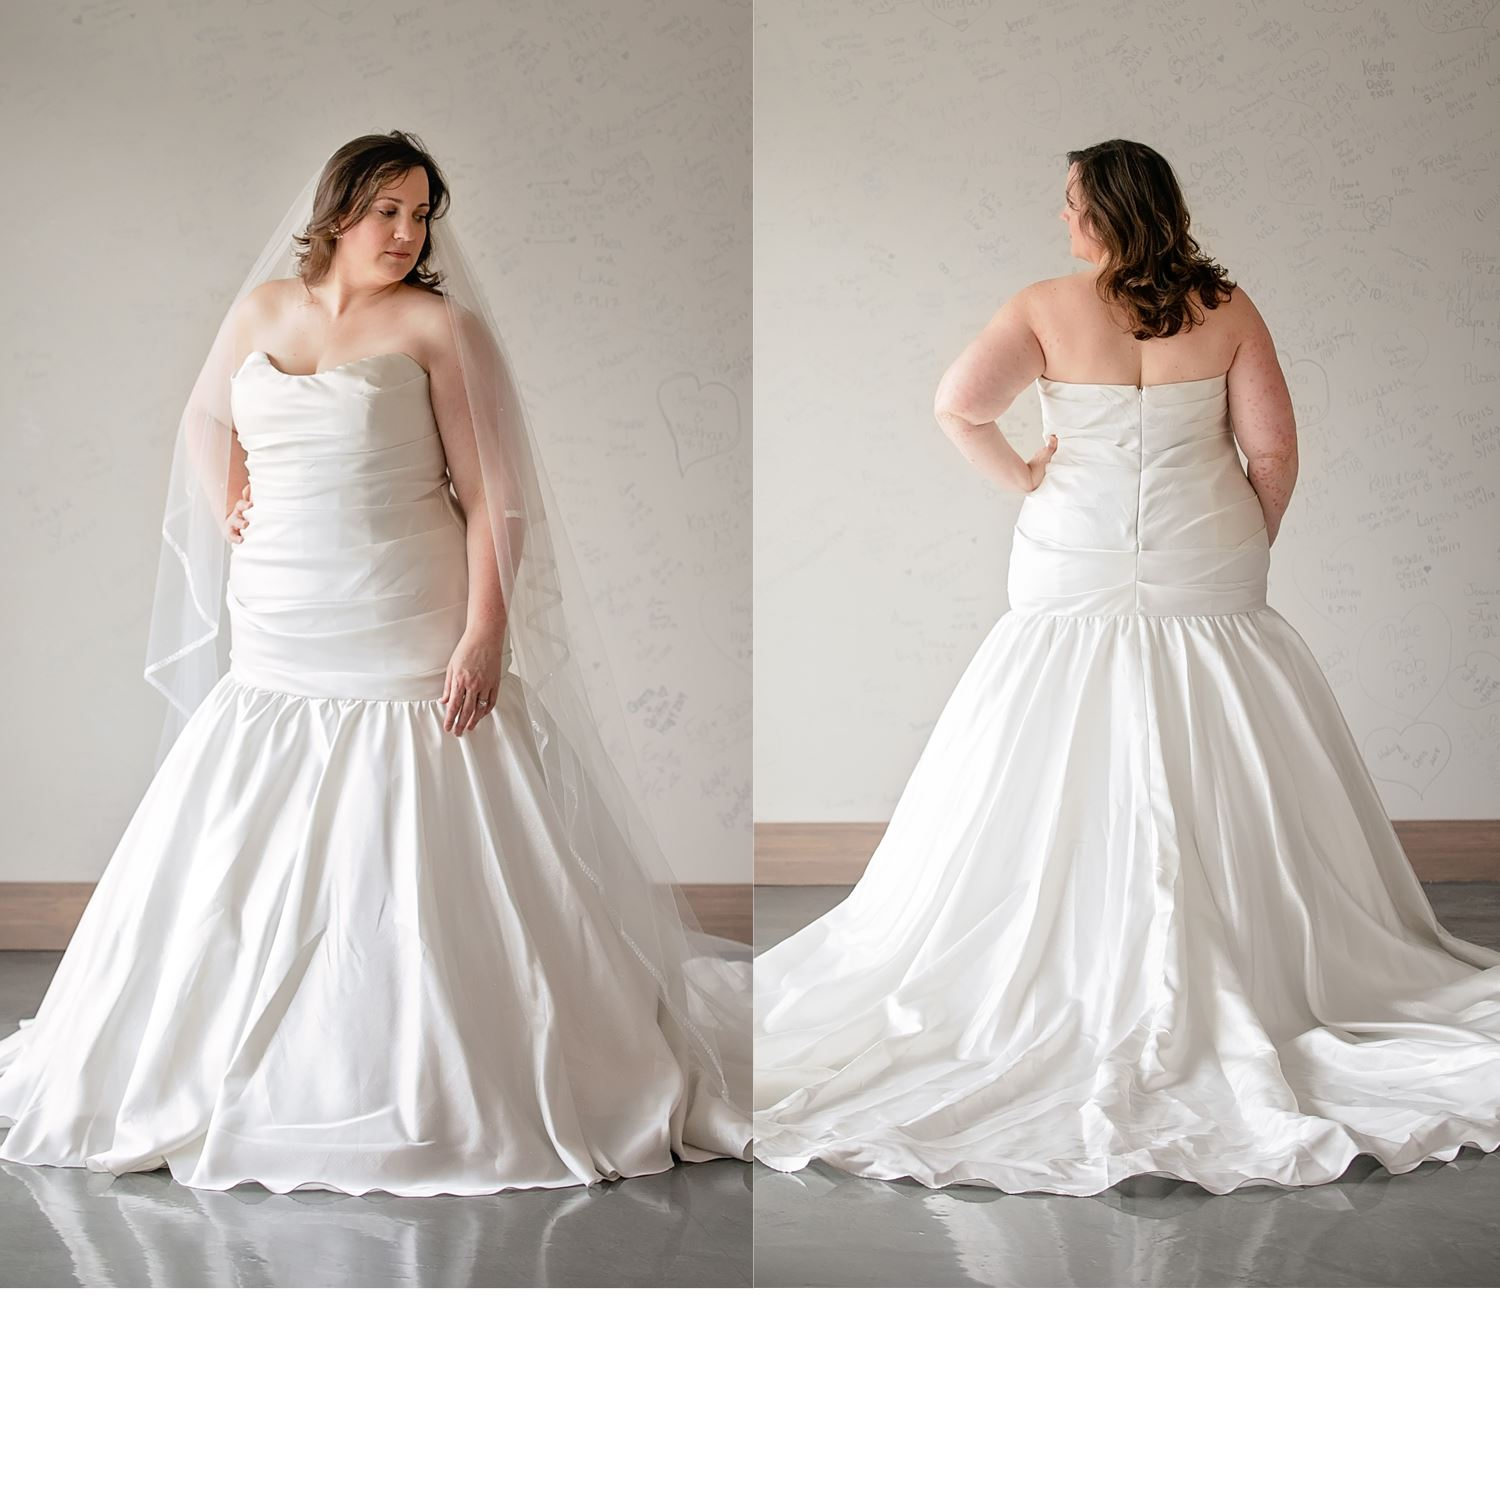 Kiki - Size 22 - Diamond White - Originally priced $1199 - Sample box price $799